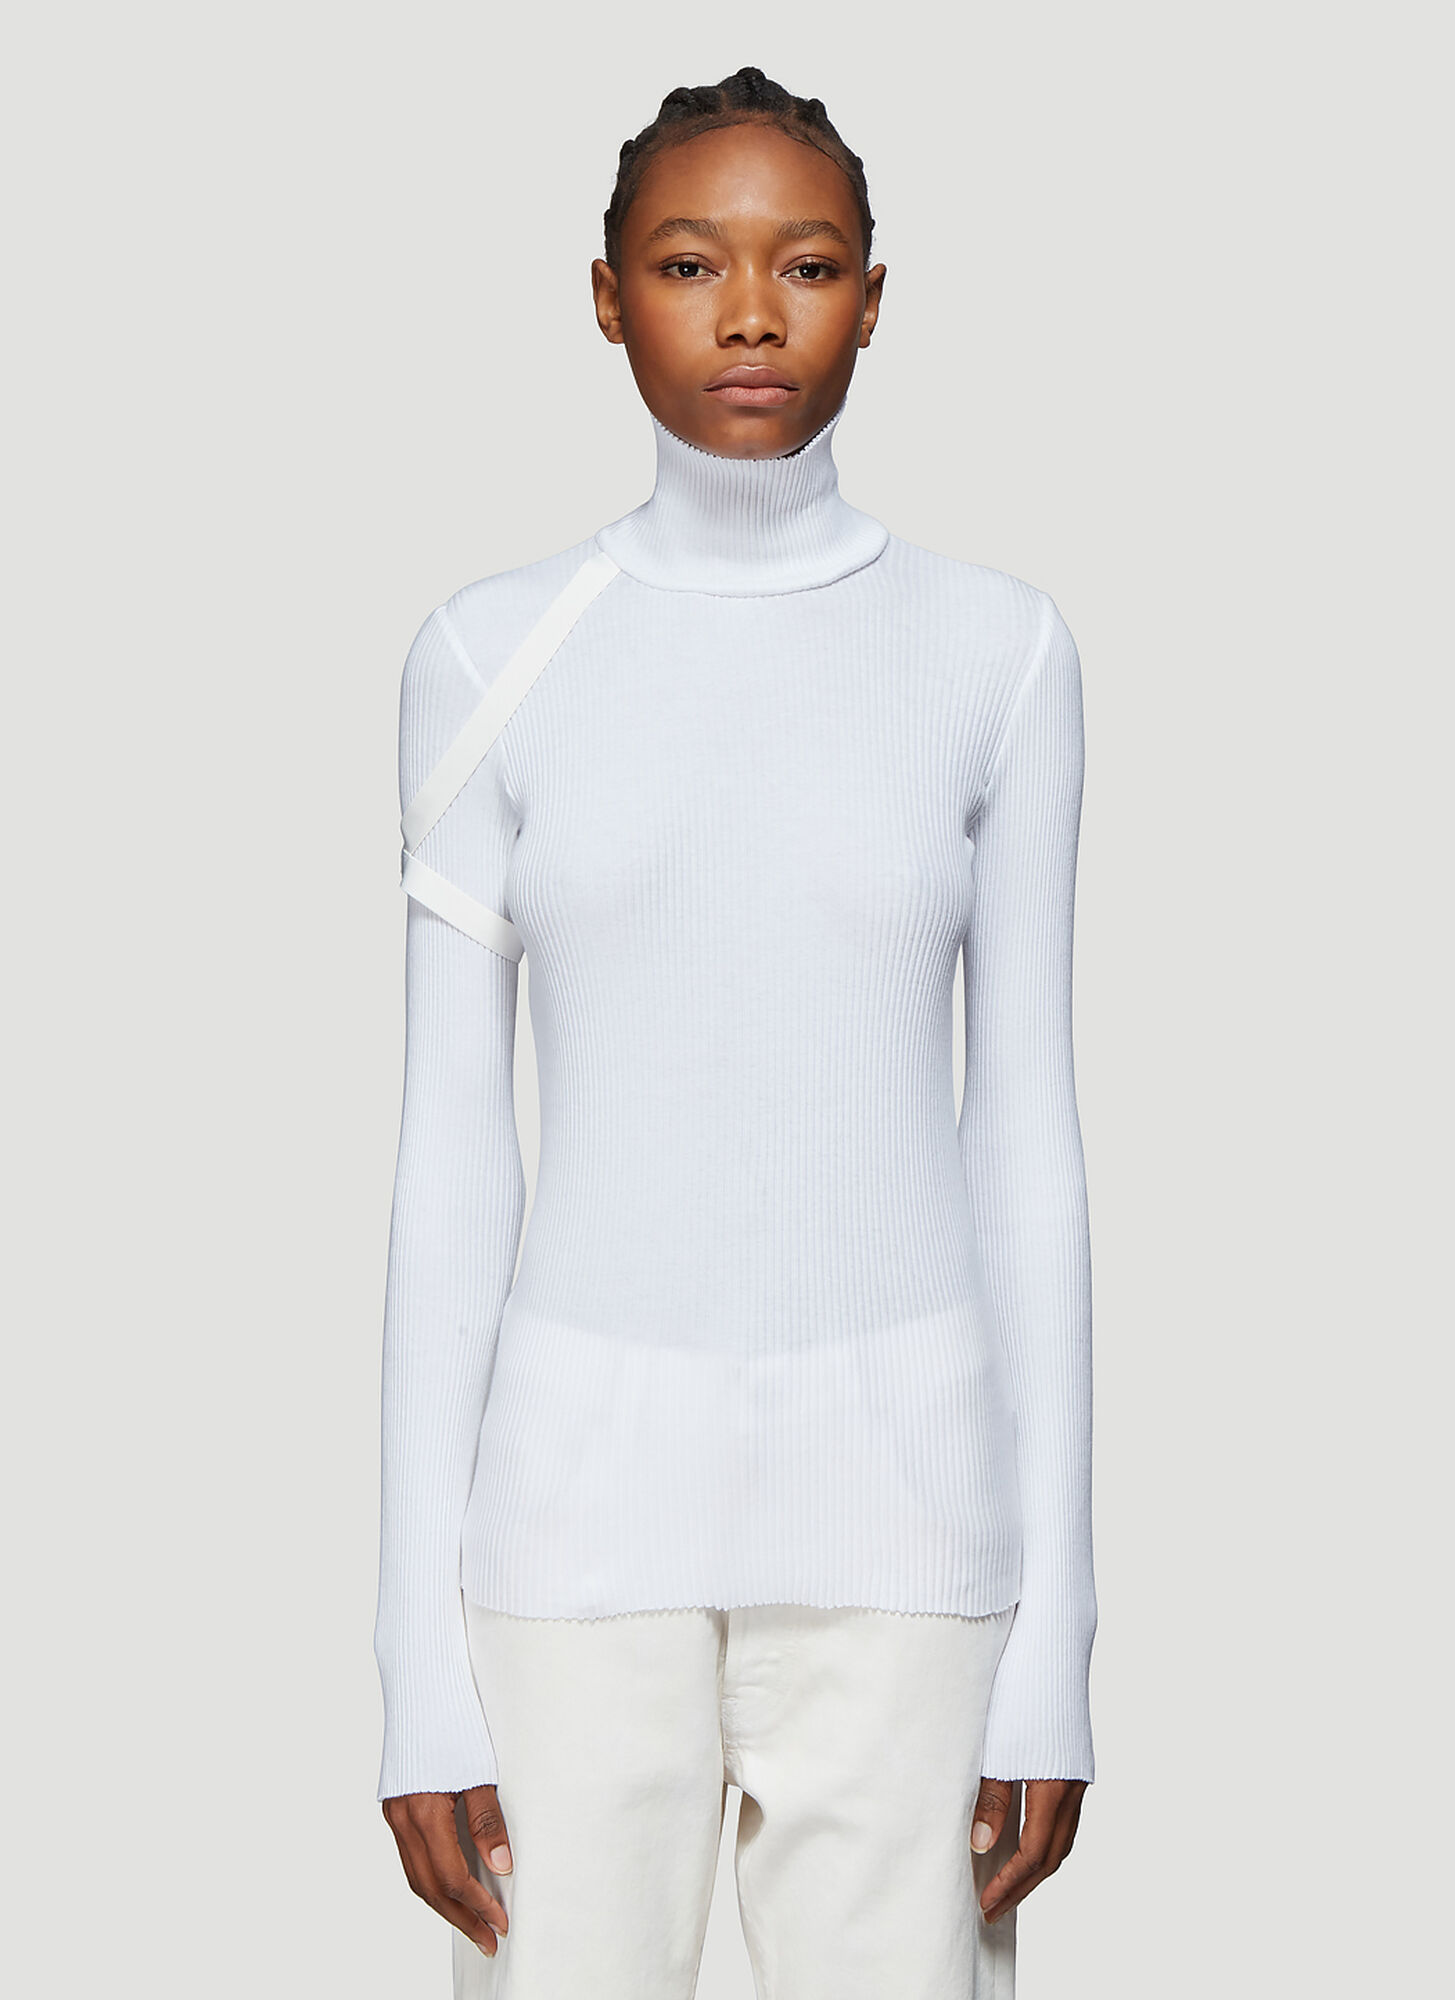 Helmut Lang Turtleneck Ribbed Sweater in White